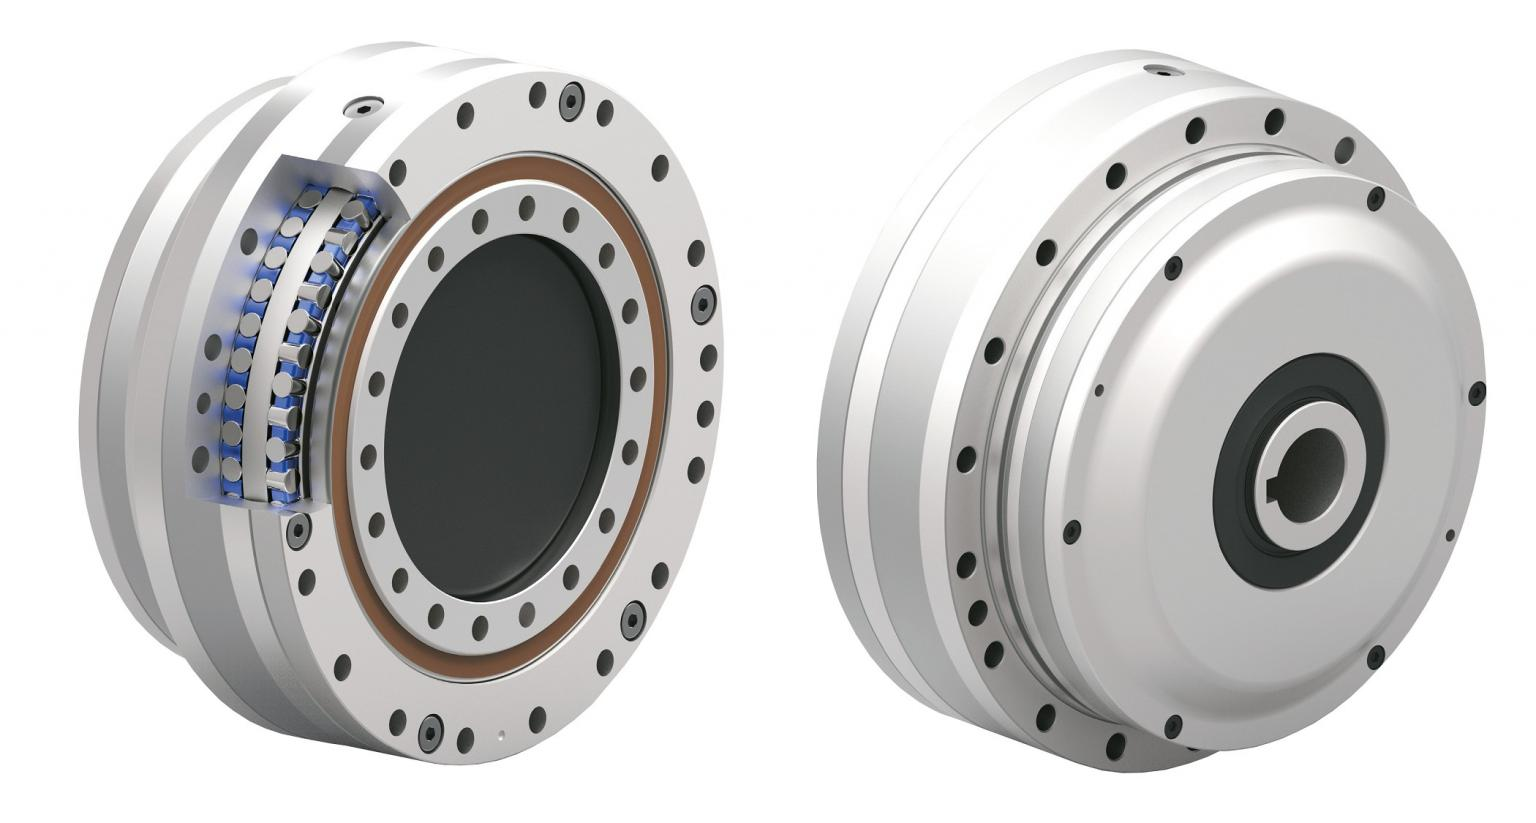 The TwinSpin G-series gear reducer and integrated heavy-duty bearing unit - available from Heason Technology